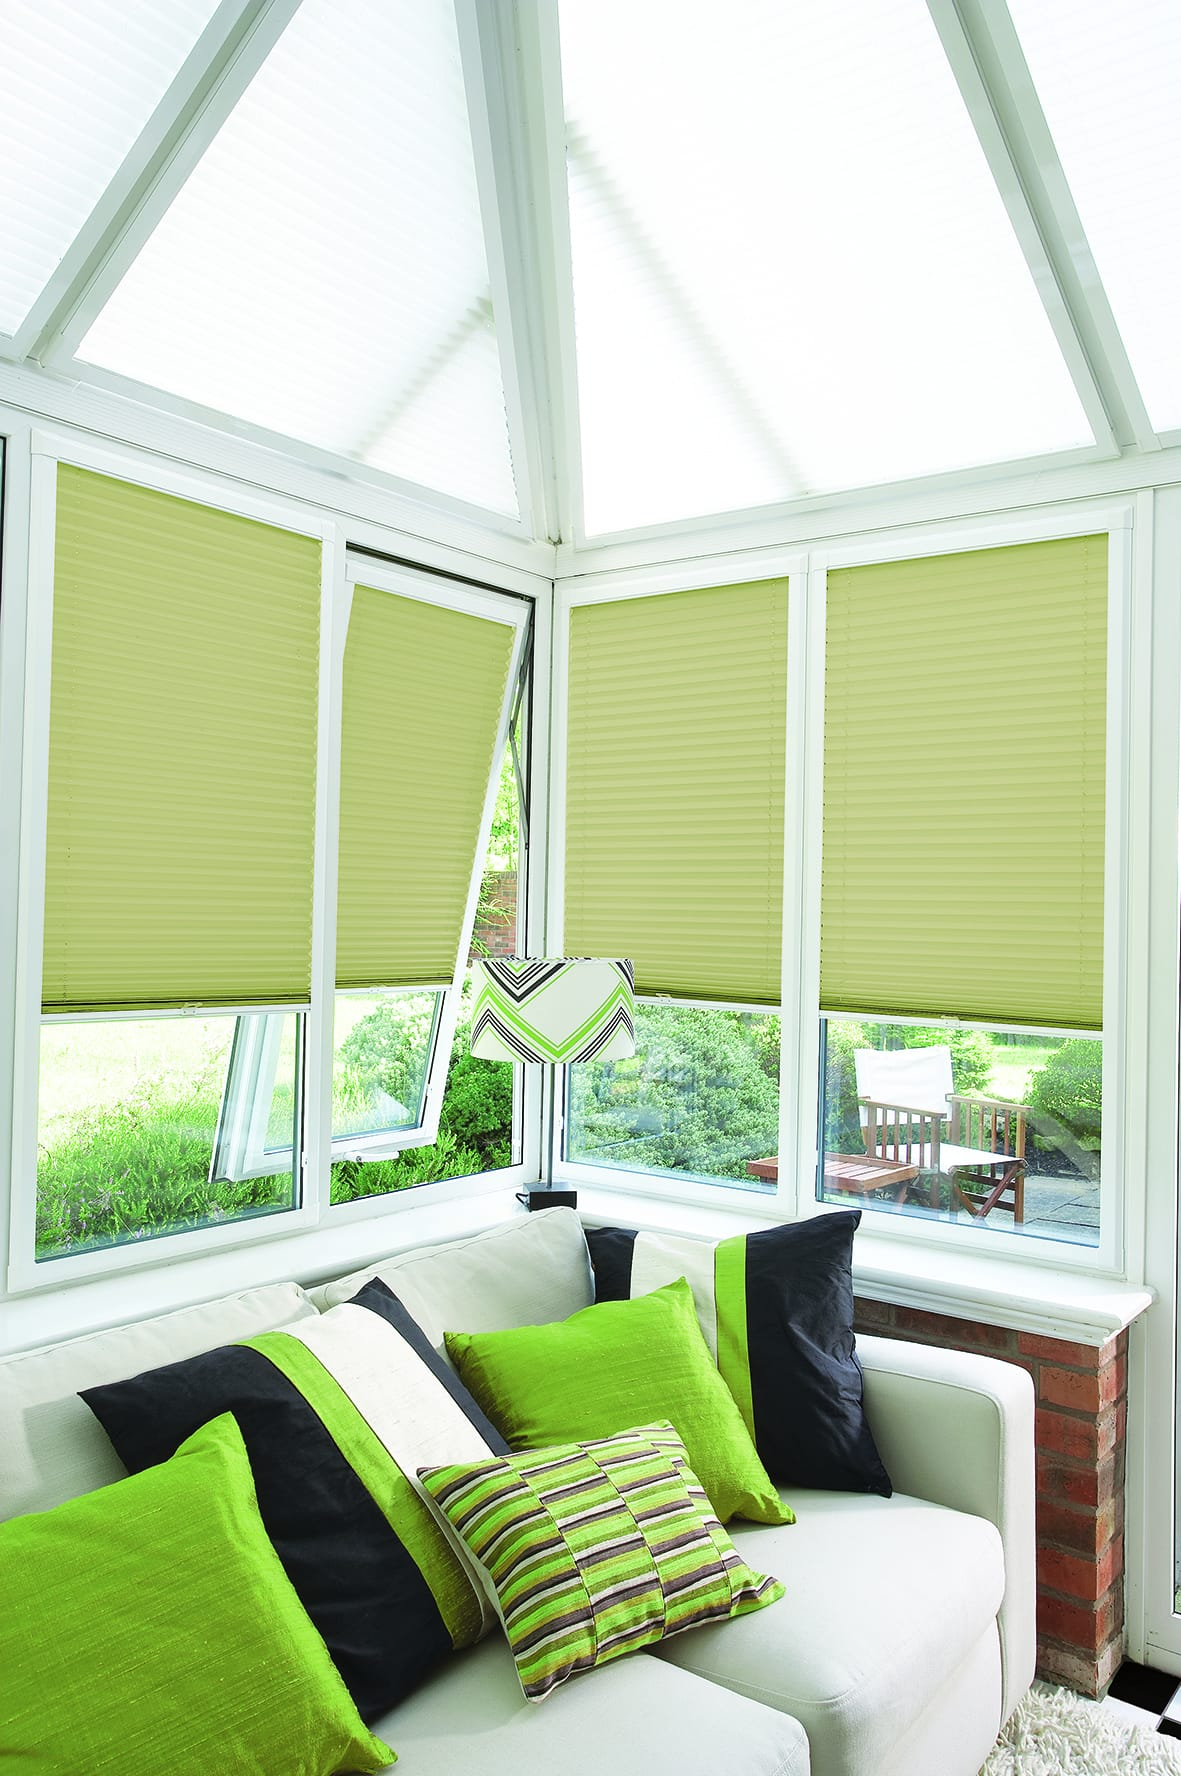 Perfect Fit Blinds Norwich Sunblinds